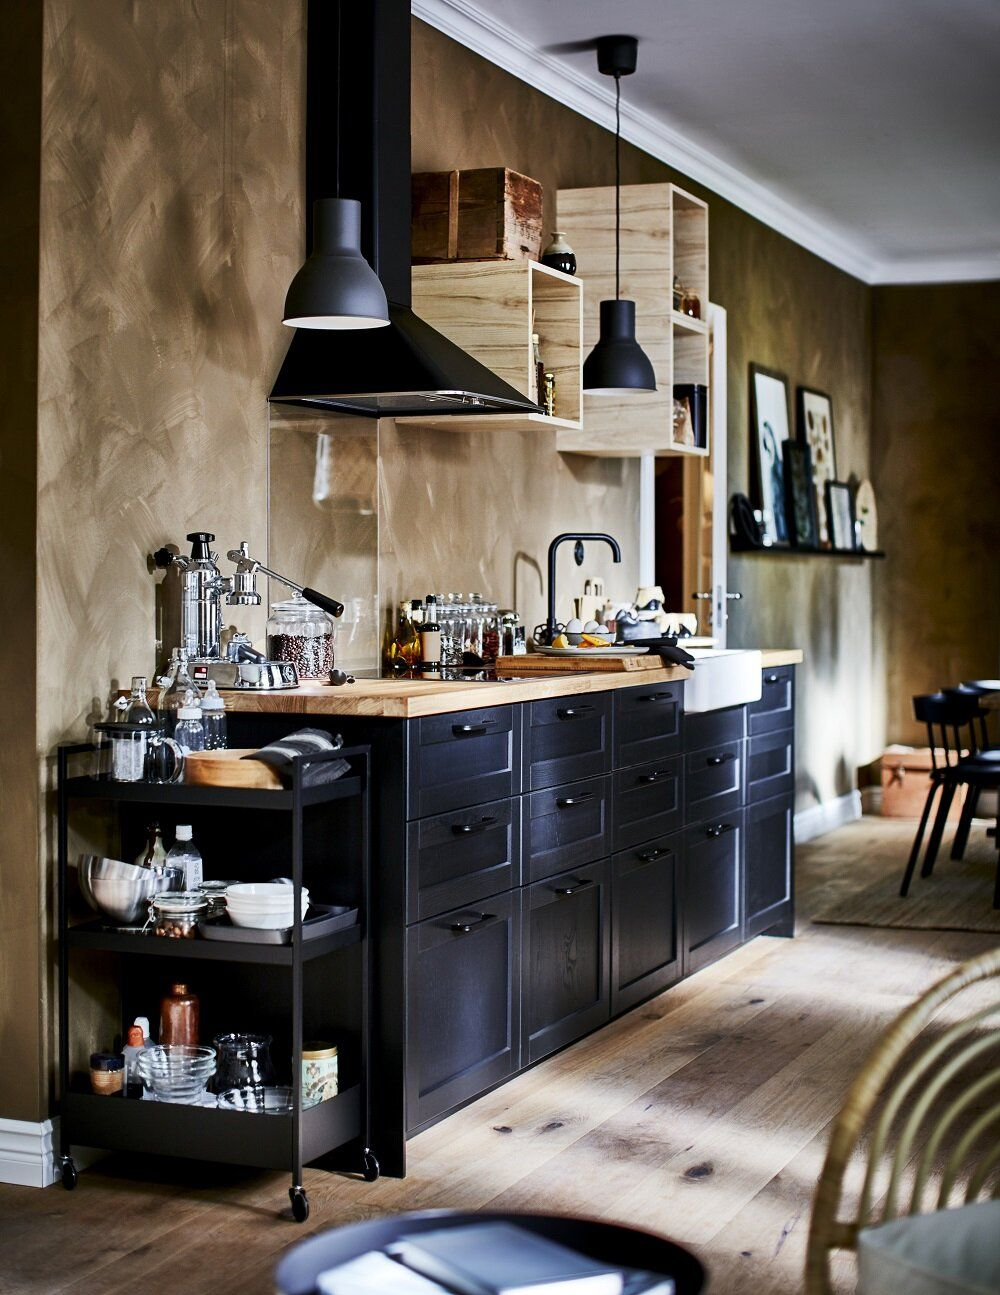 Ikea Catalog 2021 A Handbook For A Better Everyday Life At Home The Nordroom In 2020 Kitchen Decor Ikea Home Ikea Catalog